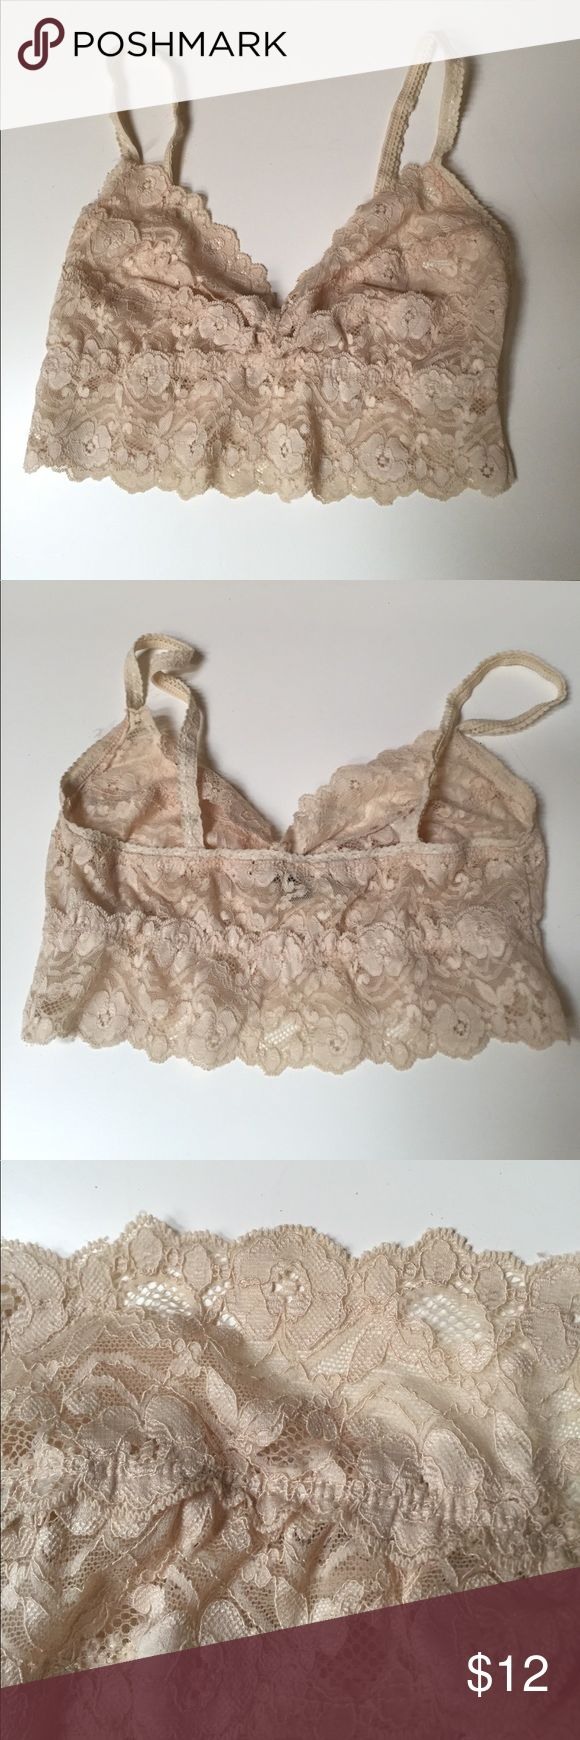 NEW LISTING!  Nude Bralette  Bundles 2+ for 20%!   Cute, comfortable, all over lace bralette in nude color. I would wear it under muscle tees or slightly transparent tanks for added modesty. Happy to answer any questions! Foreign Exchange Intimates & Sleepwear